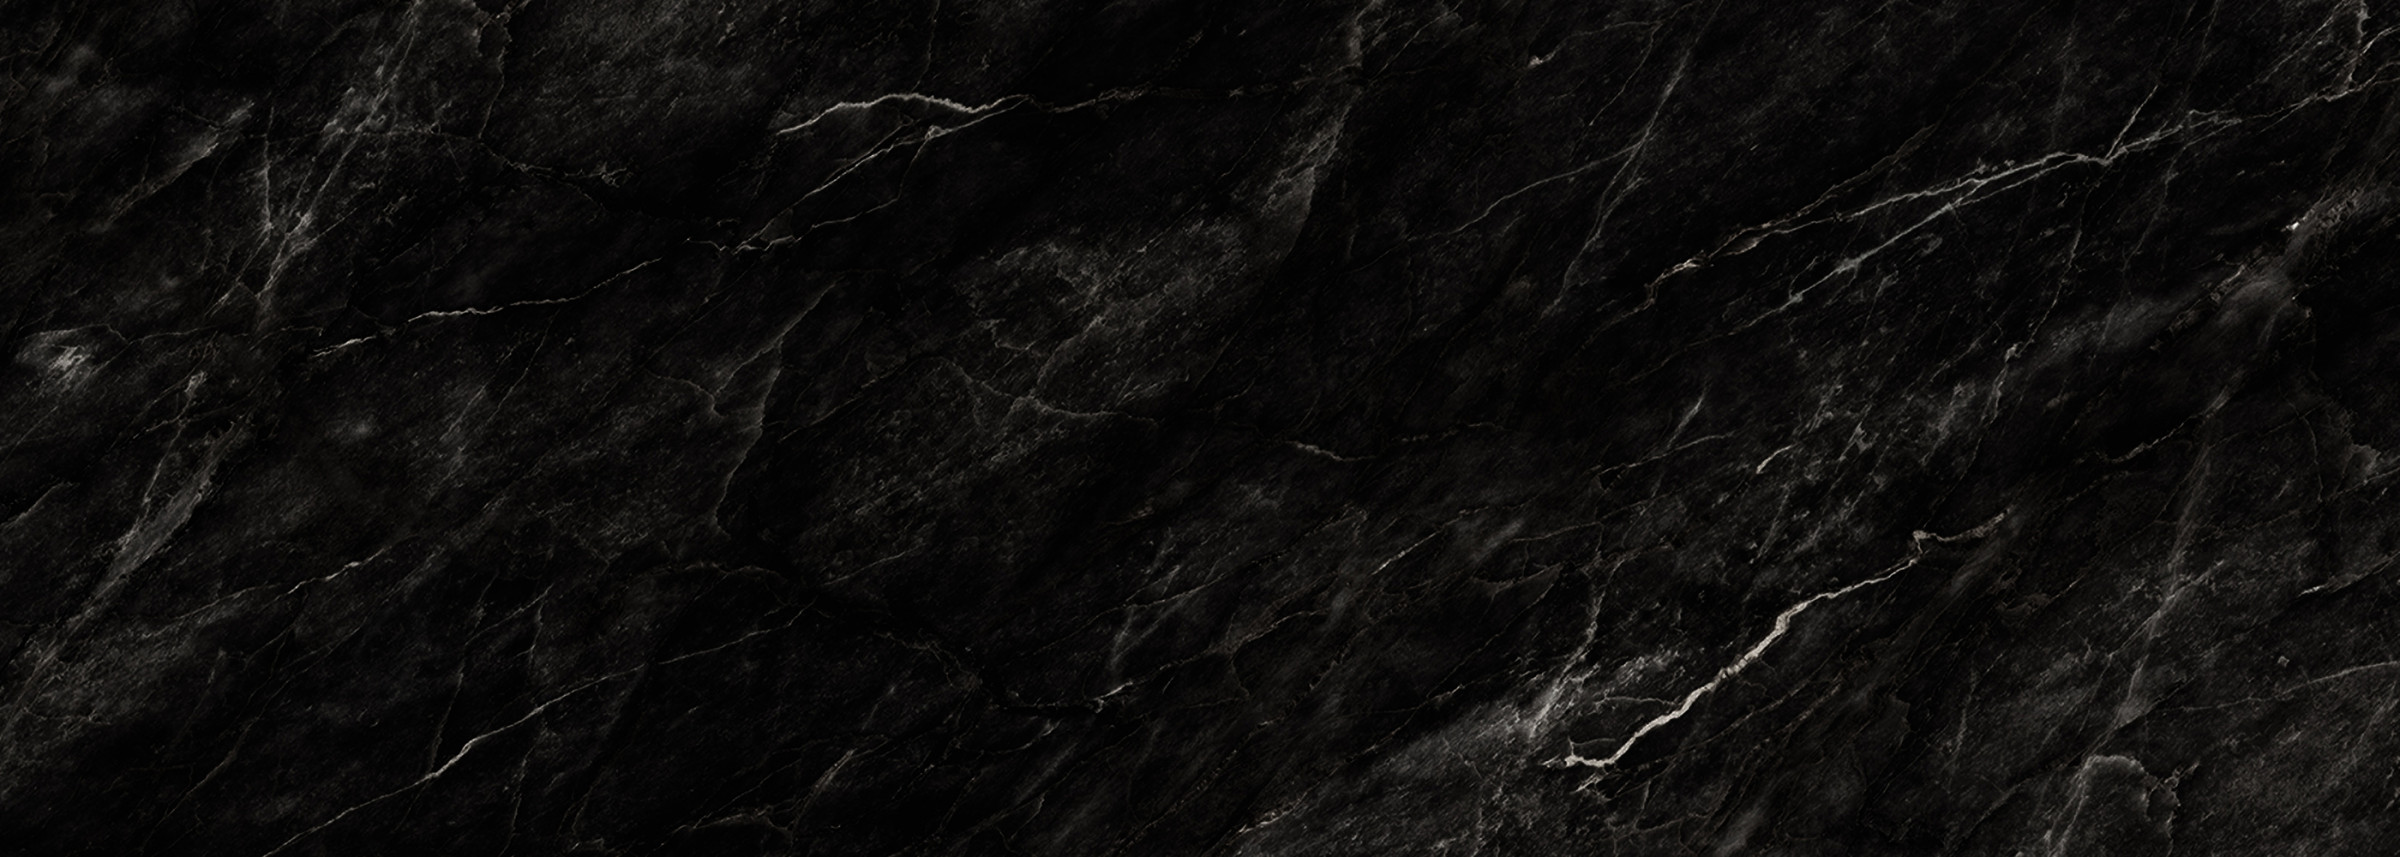 Black marble patterned ,natural patterns, texture background, abstract marble texture background for design. granite texure